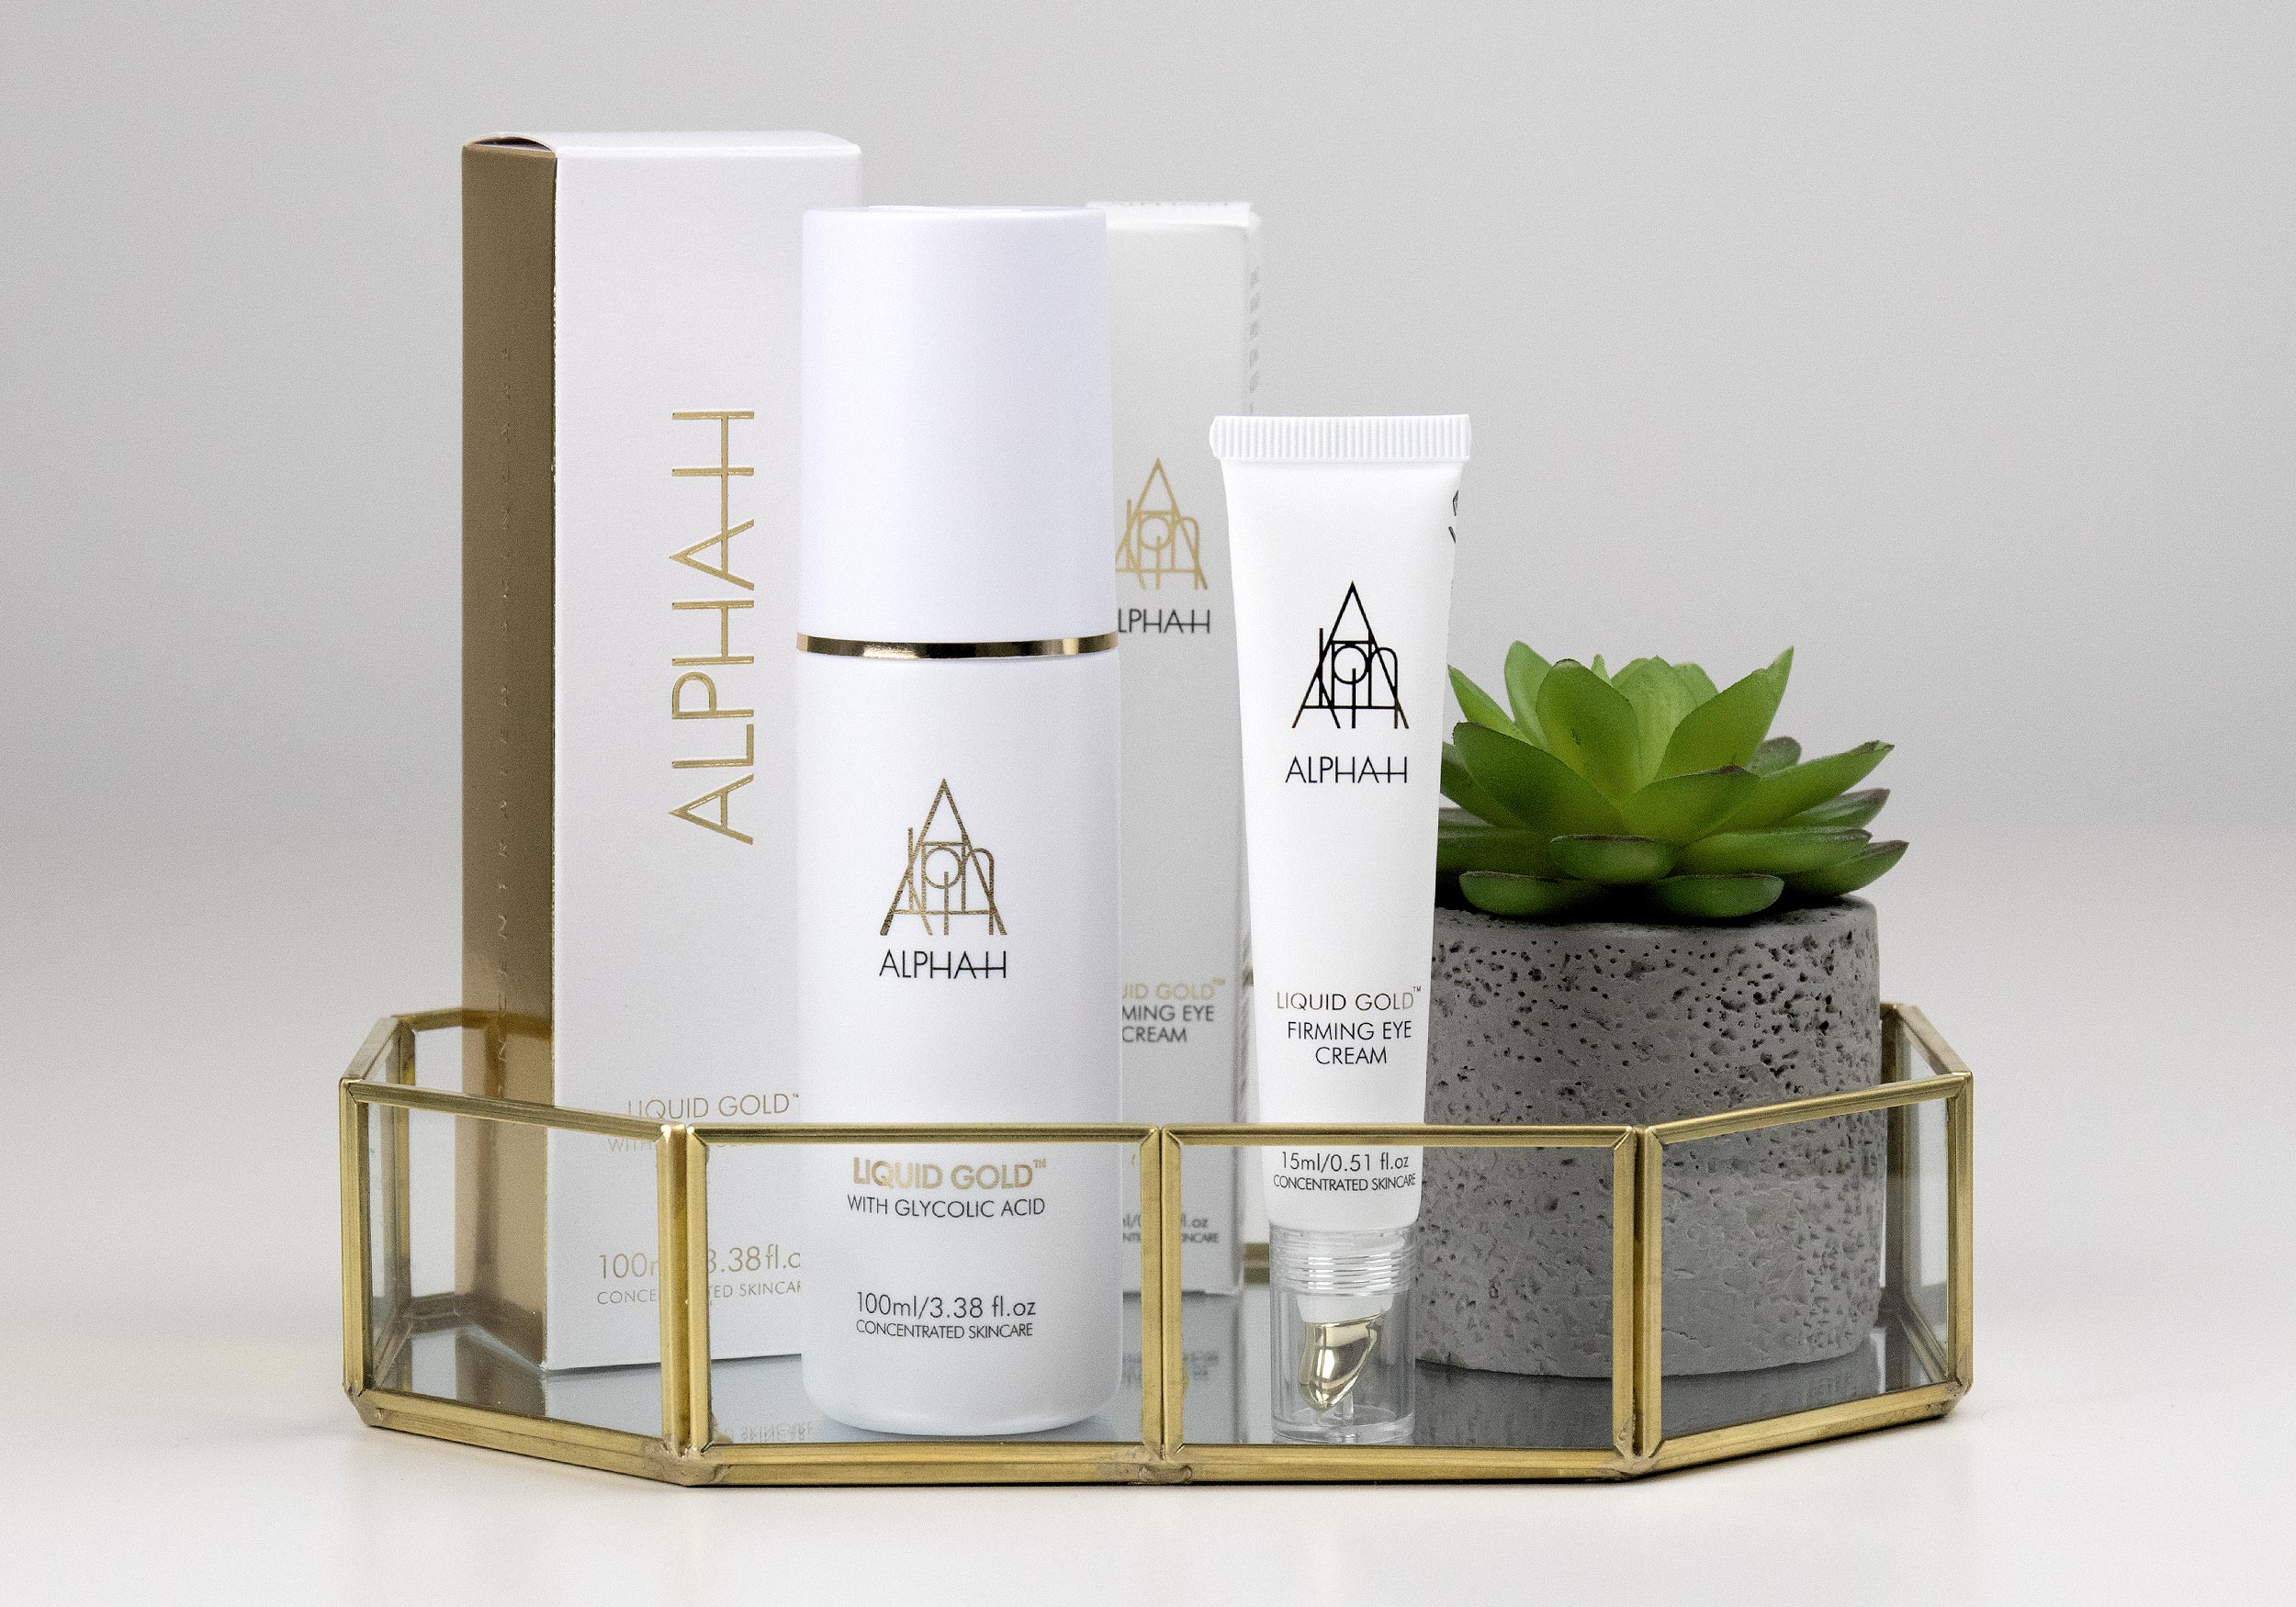 ALPHA-H LIQUID GOLD Lotion & Firming Eye Cream